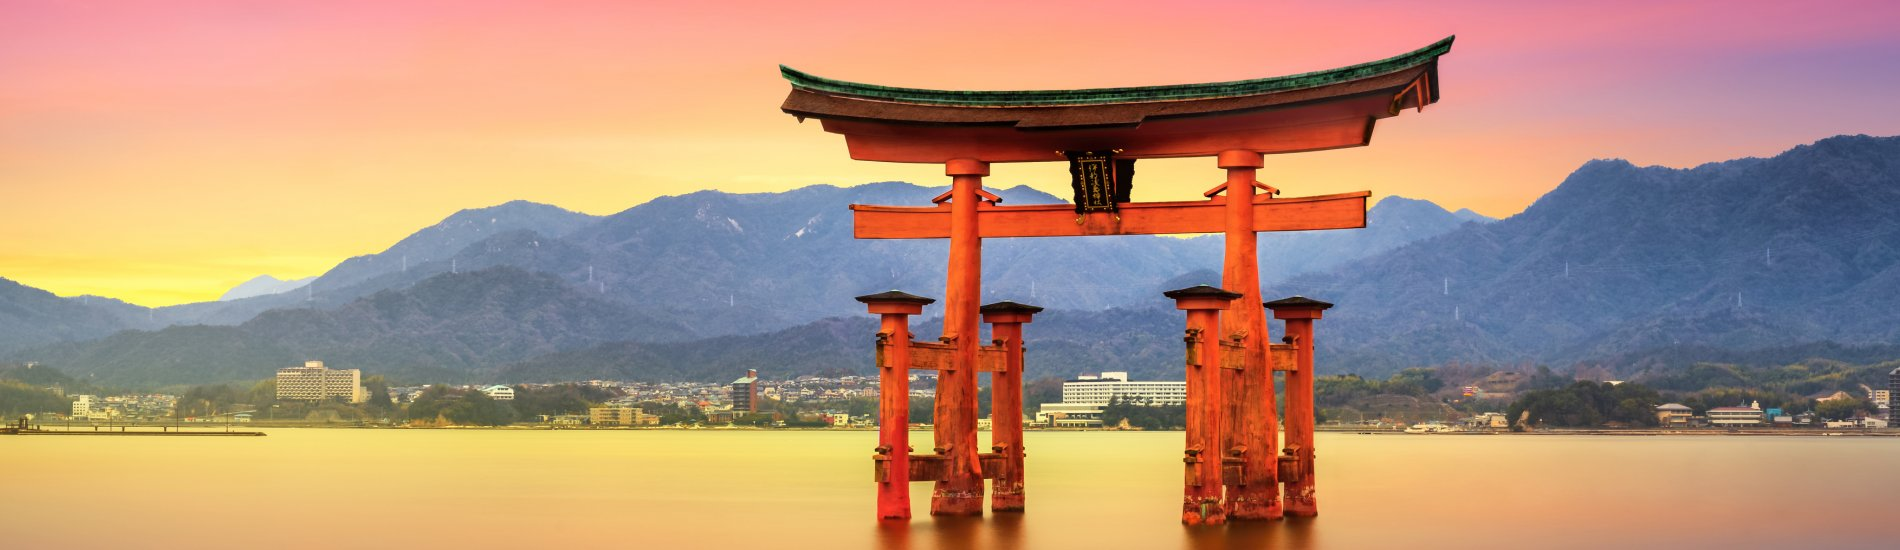 Floating Torii Gate of Itsukushima Shrine off the coast of Miyajima Island in Japan at sunset.